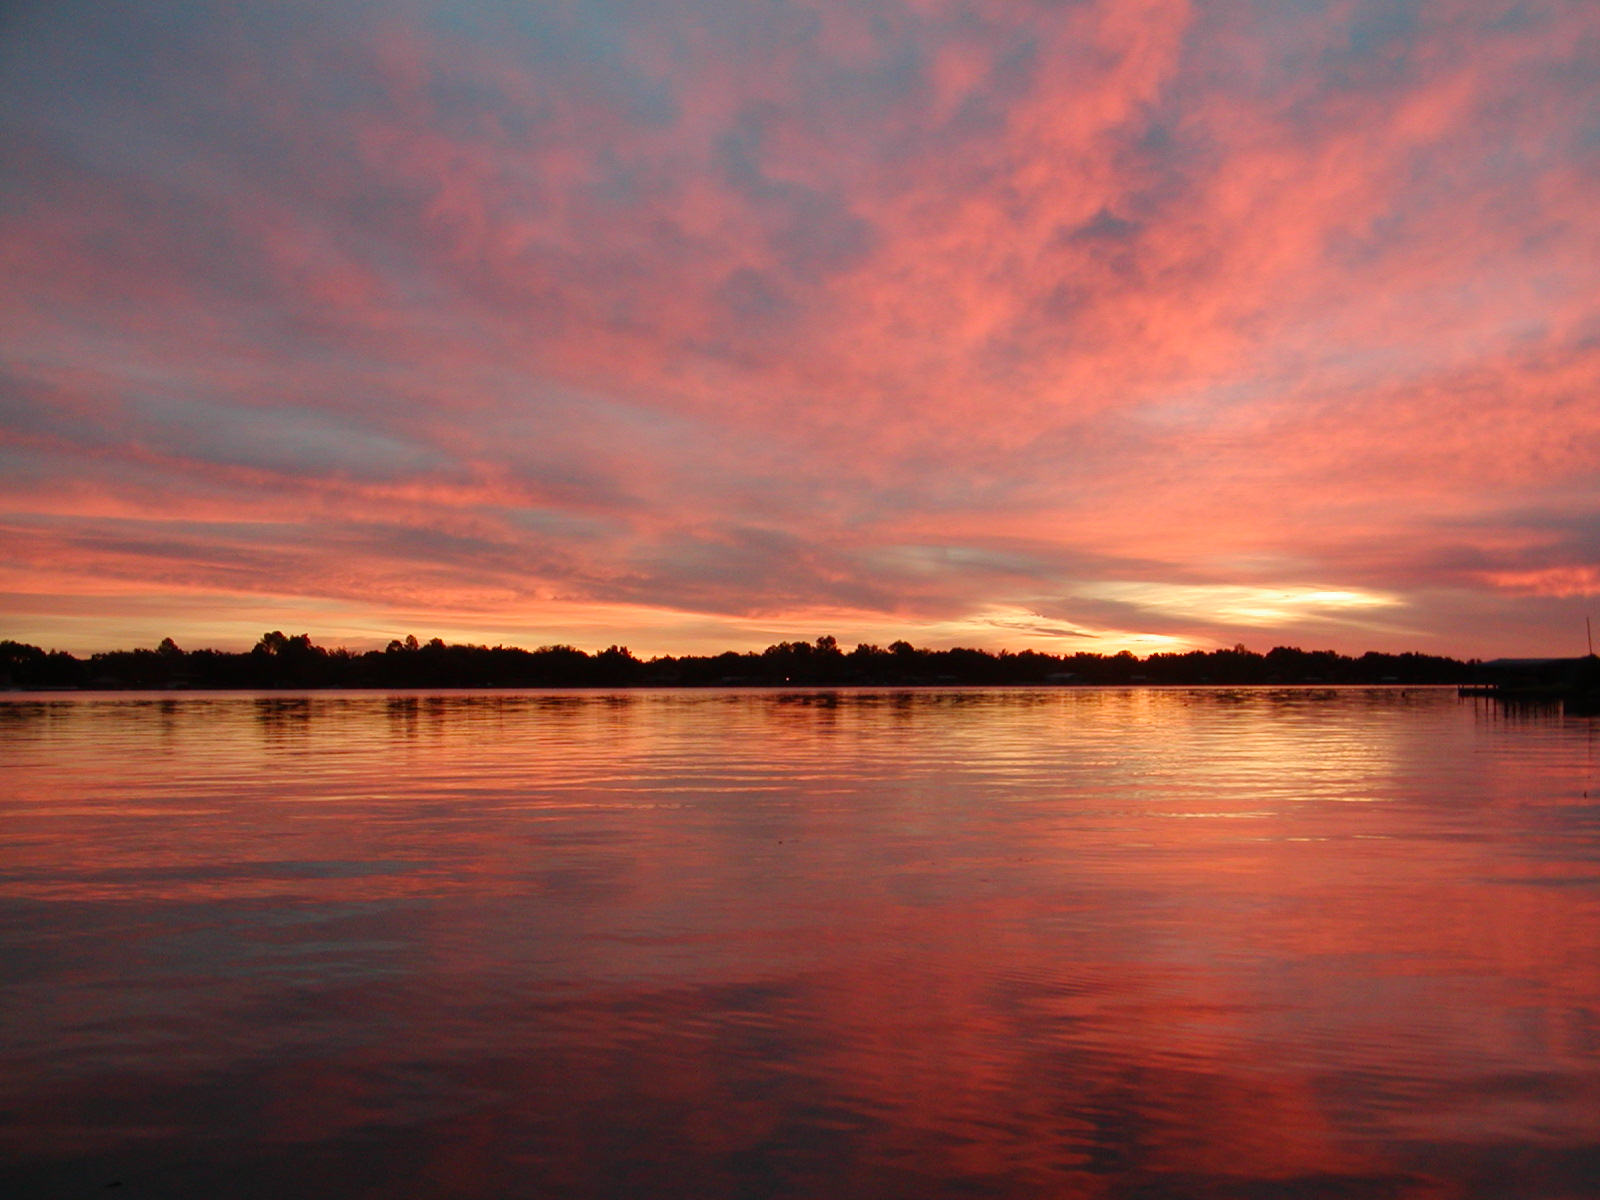 Sunrise at Sunrise Beach on Lake LBJ - Photo by Mark Jordan